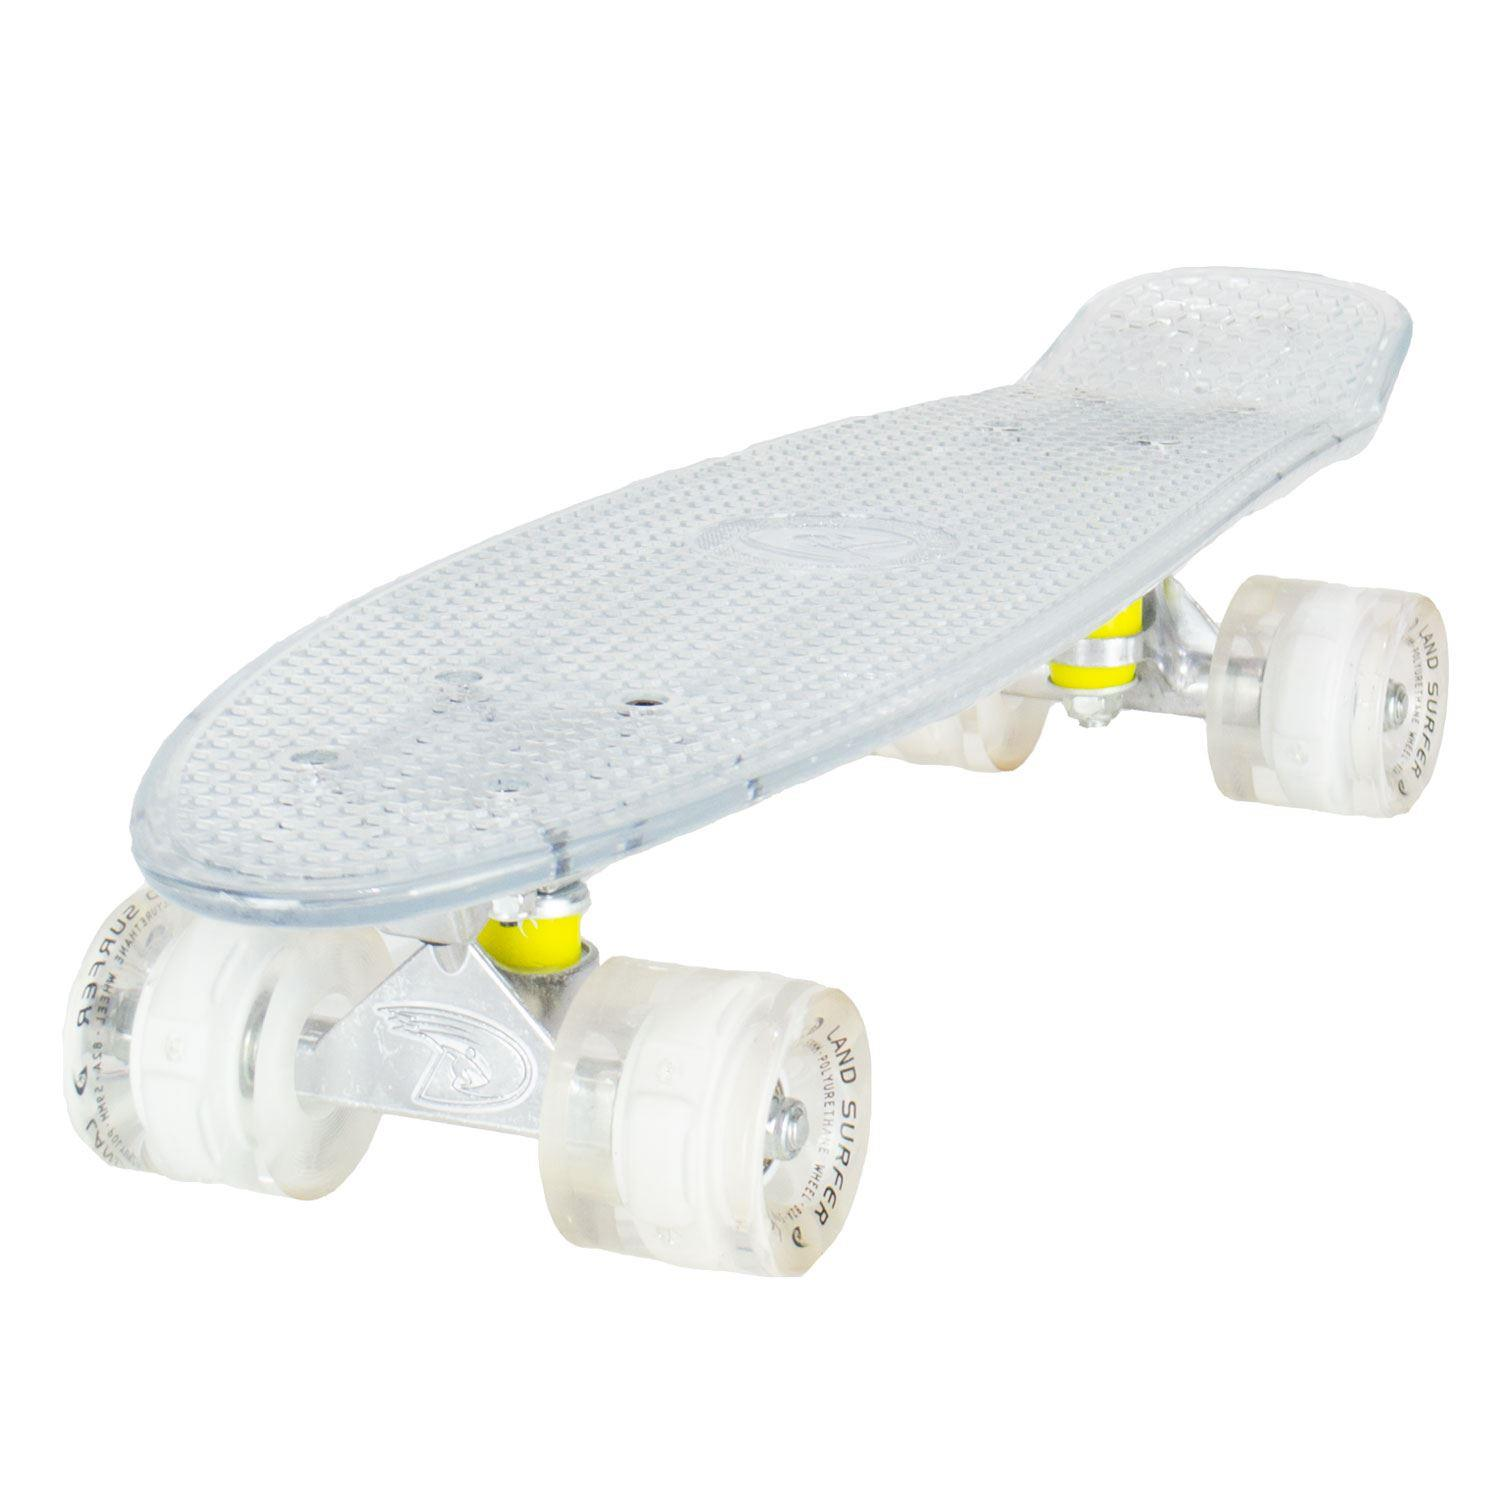 Land Surfer Skateboard - Clear Board - LED White Wheels